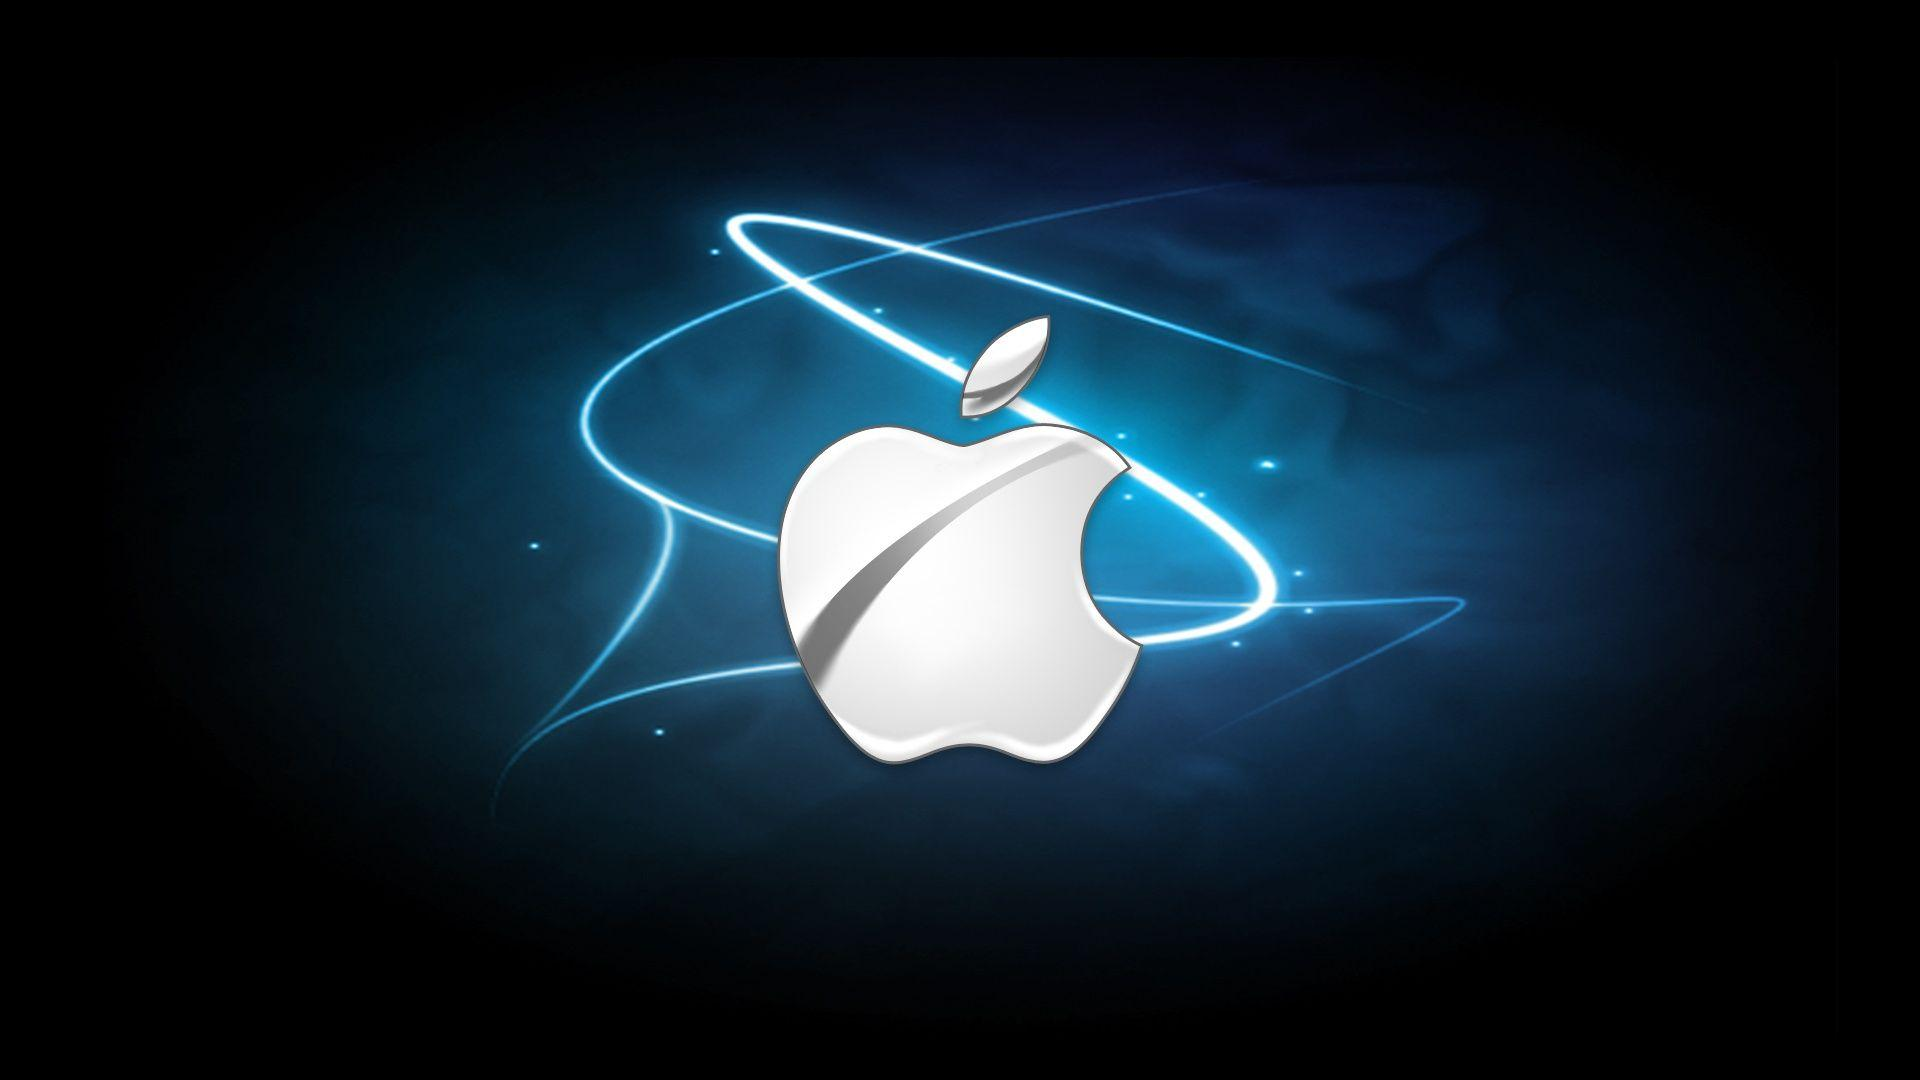 Hd apple wallpapers 1080p